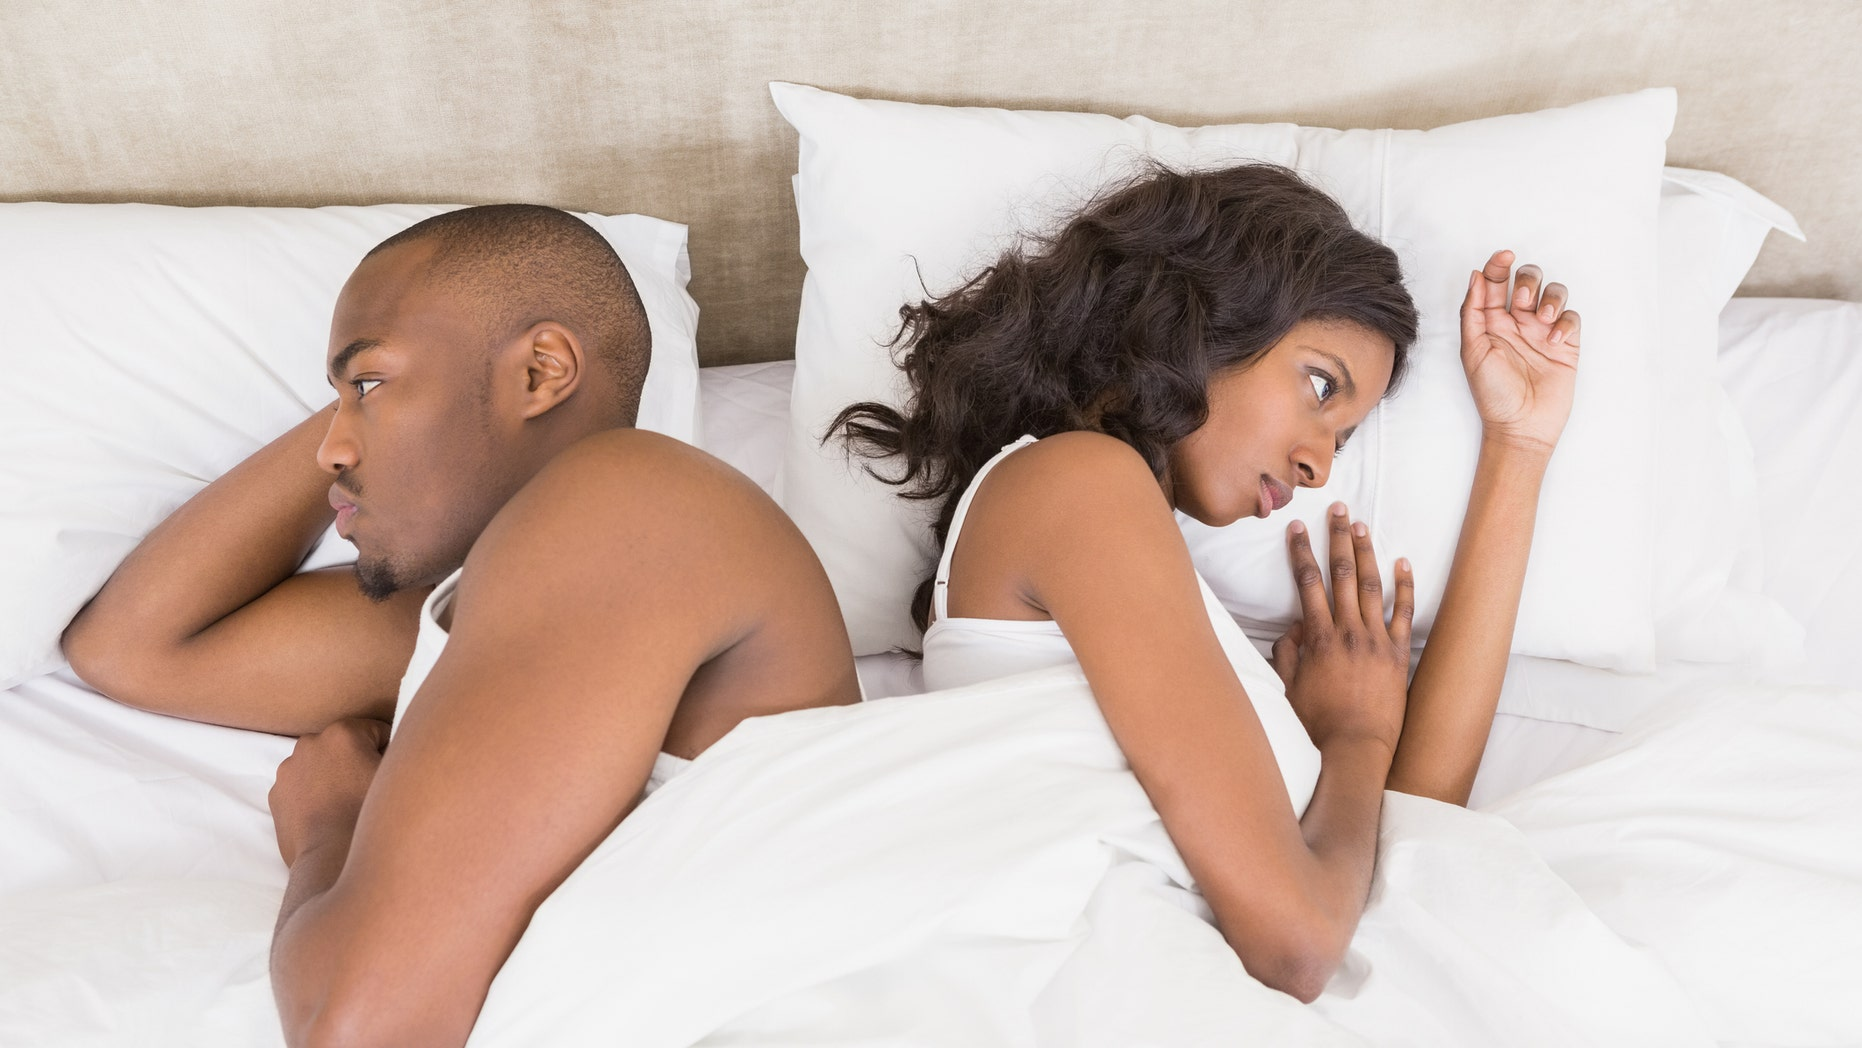 Young couple back to back ignoring each other in the bedroom